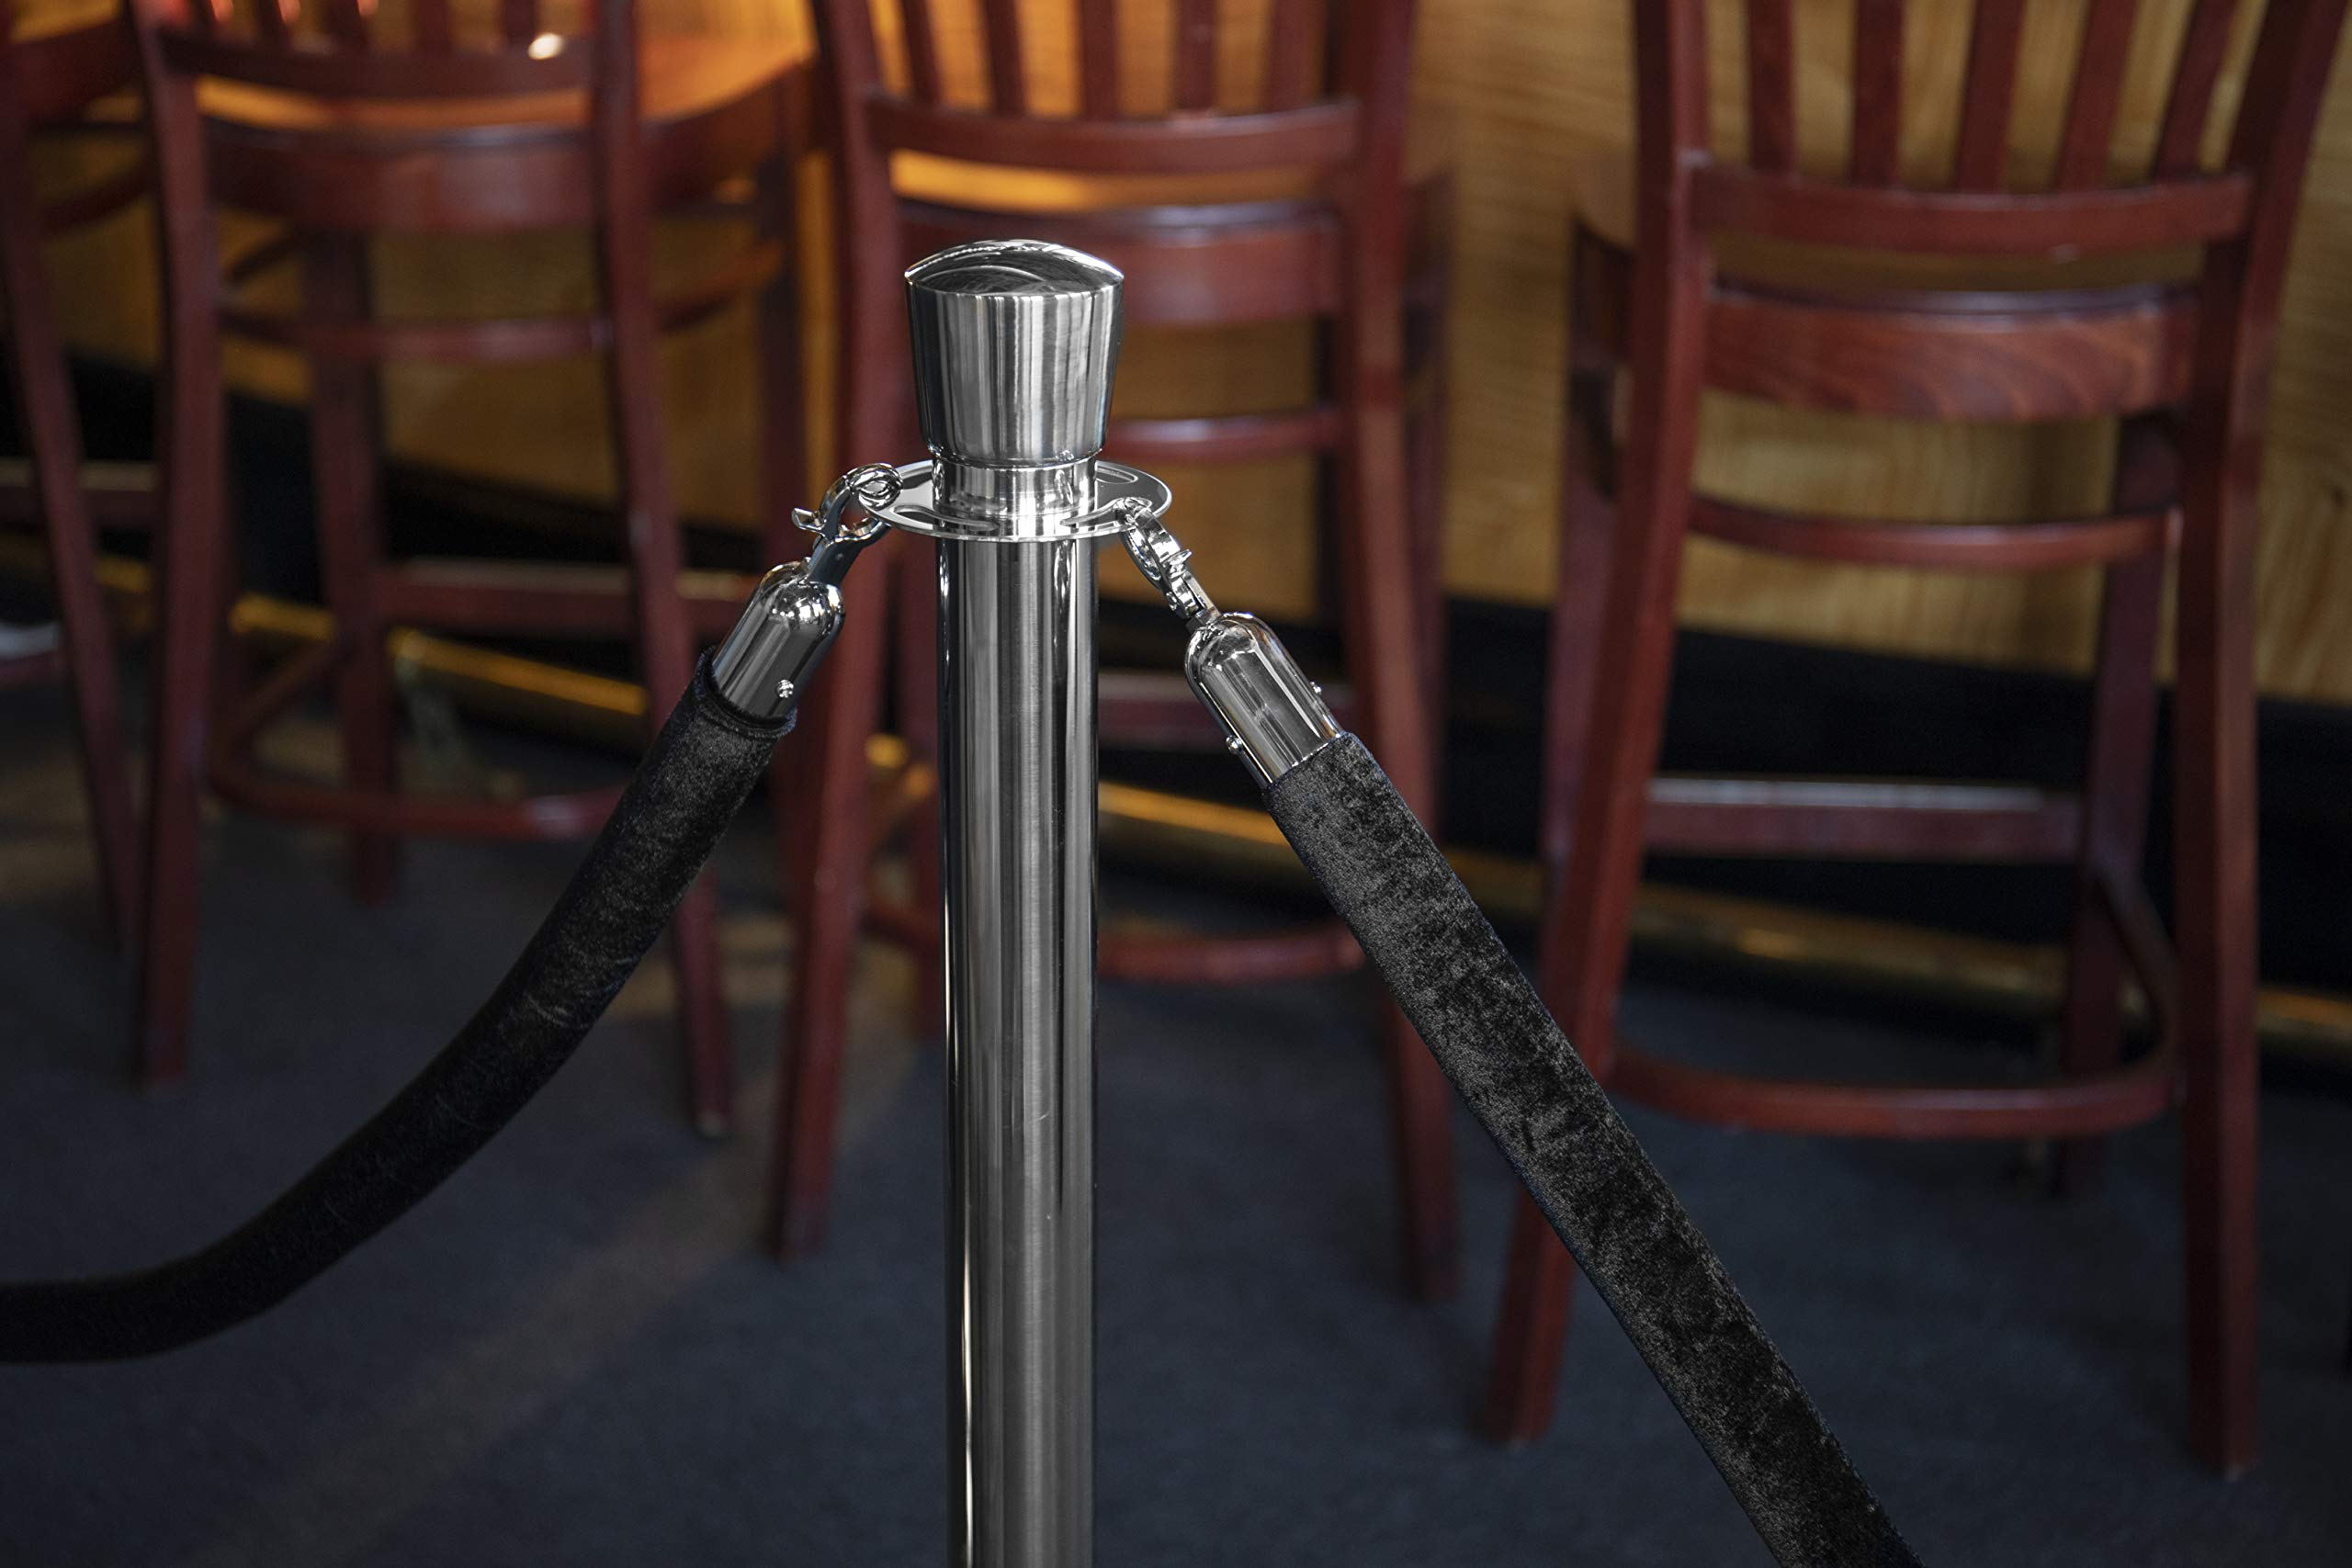 US Weight Premier Chrome Post and Black Velvet Rope Crowd Control Stanchions - 6 Pack, Includes 6 Chrome Stanchions & 5 Velvet Ropes by US Weight (Image #27)